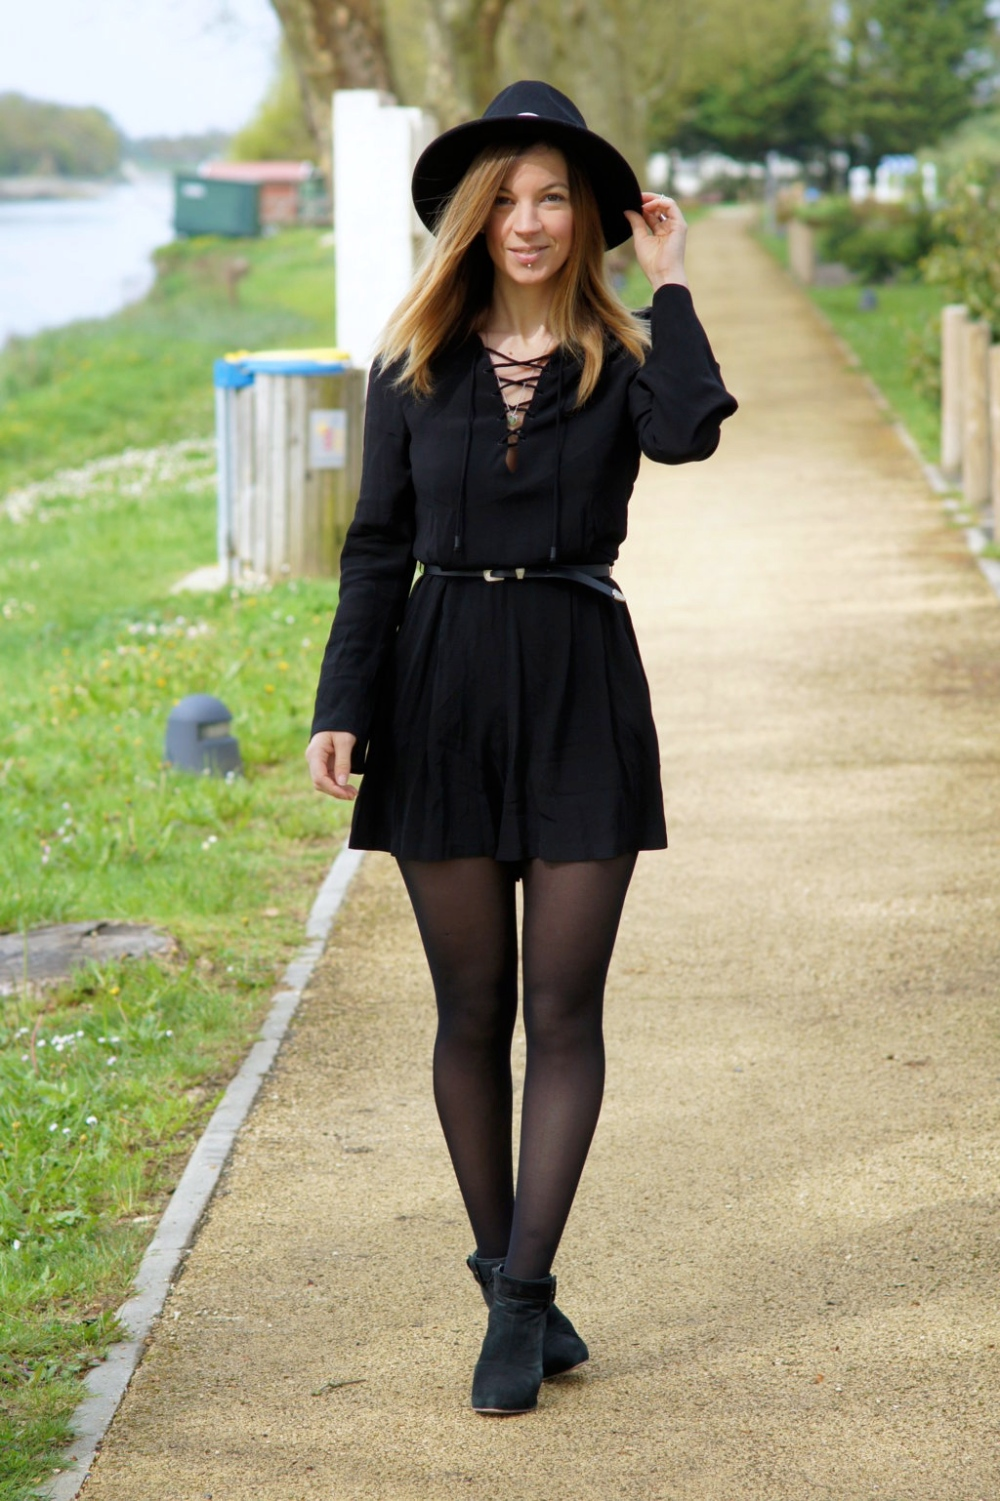 DSC02482 (FILEminimizer)